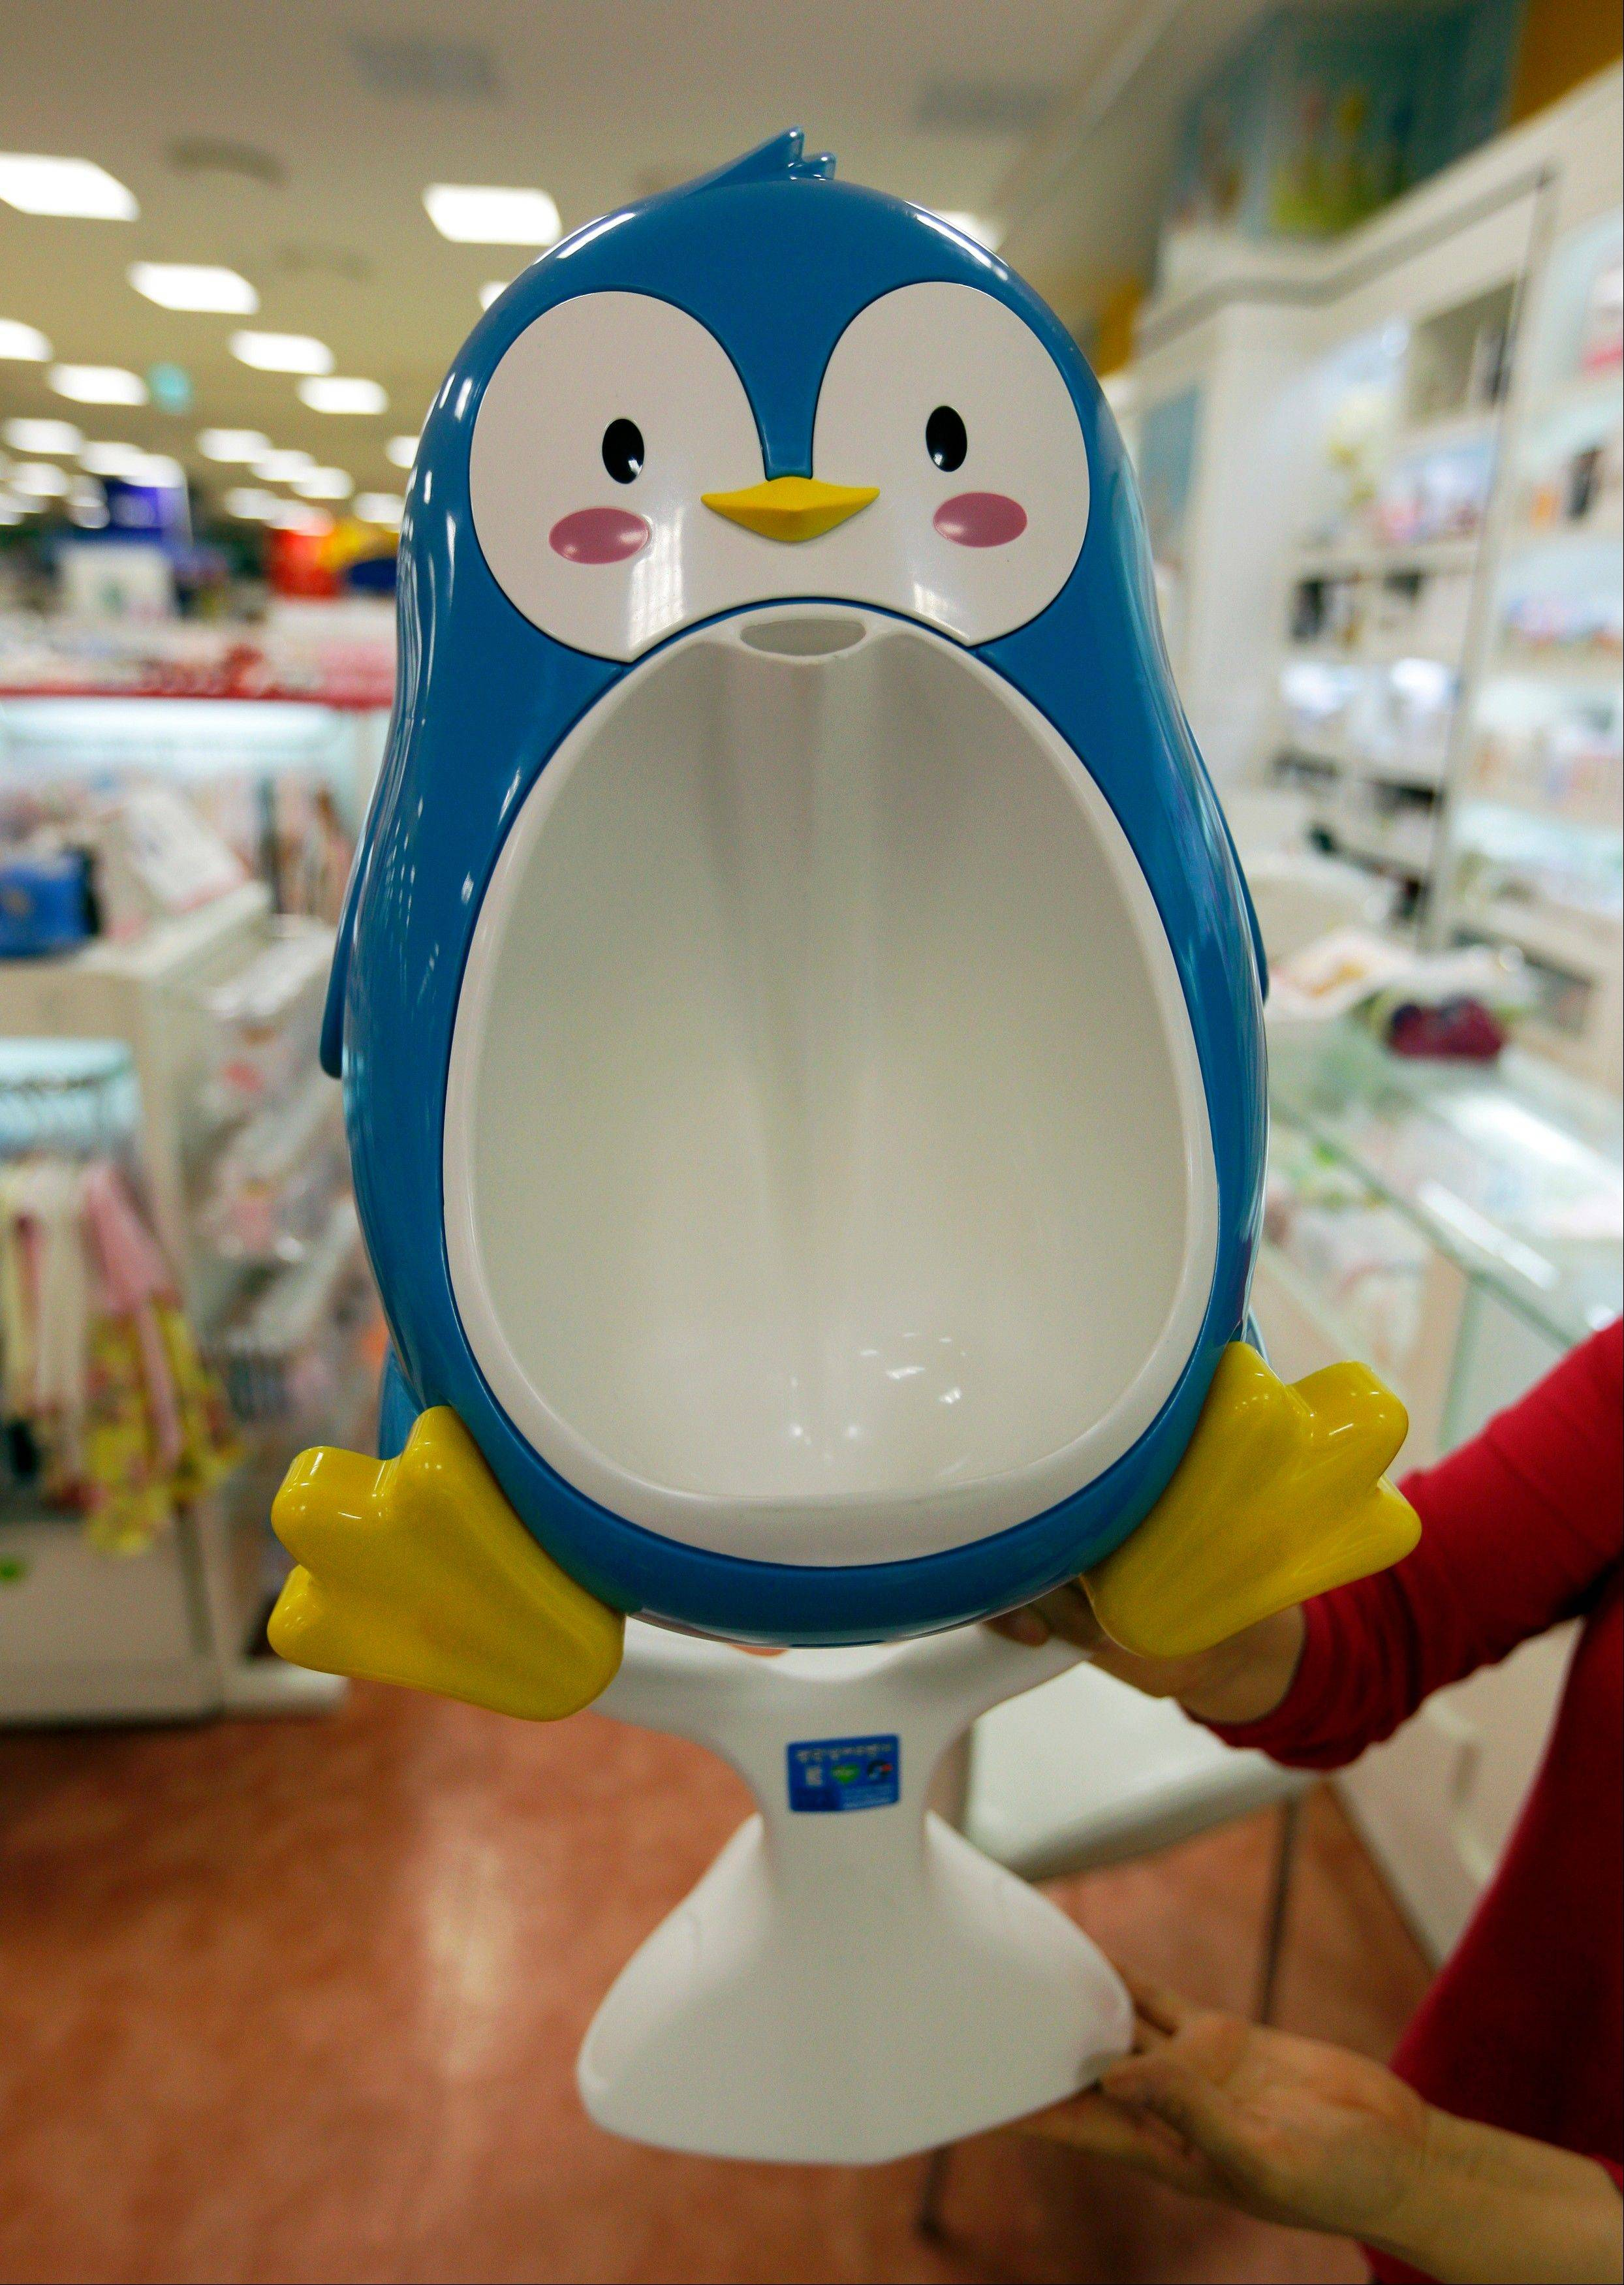 A penguin-shaped urinal for boy's training is available in a shop in Seoul, South Korea. For some parents, summertime is potty-training time.